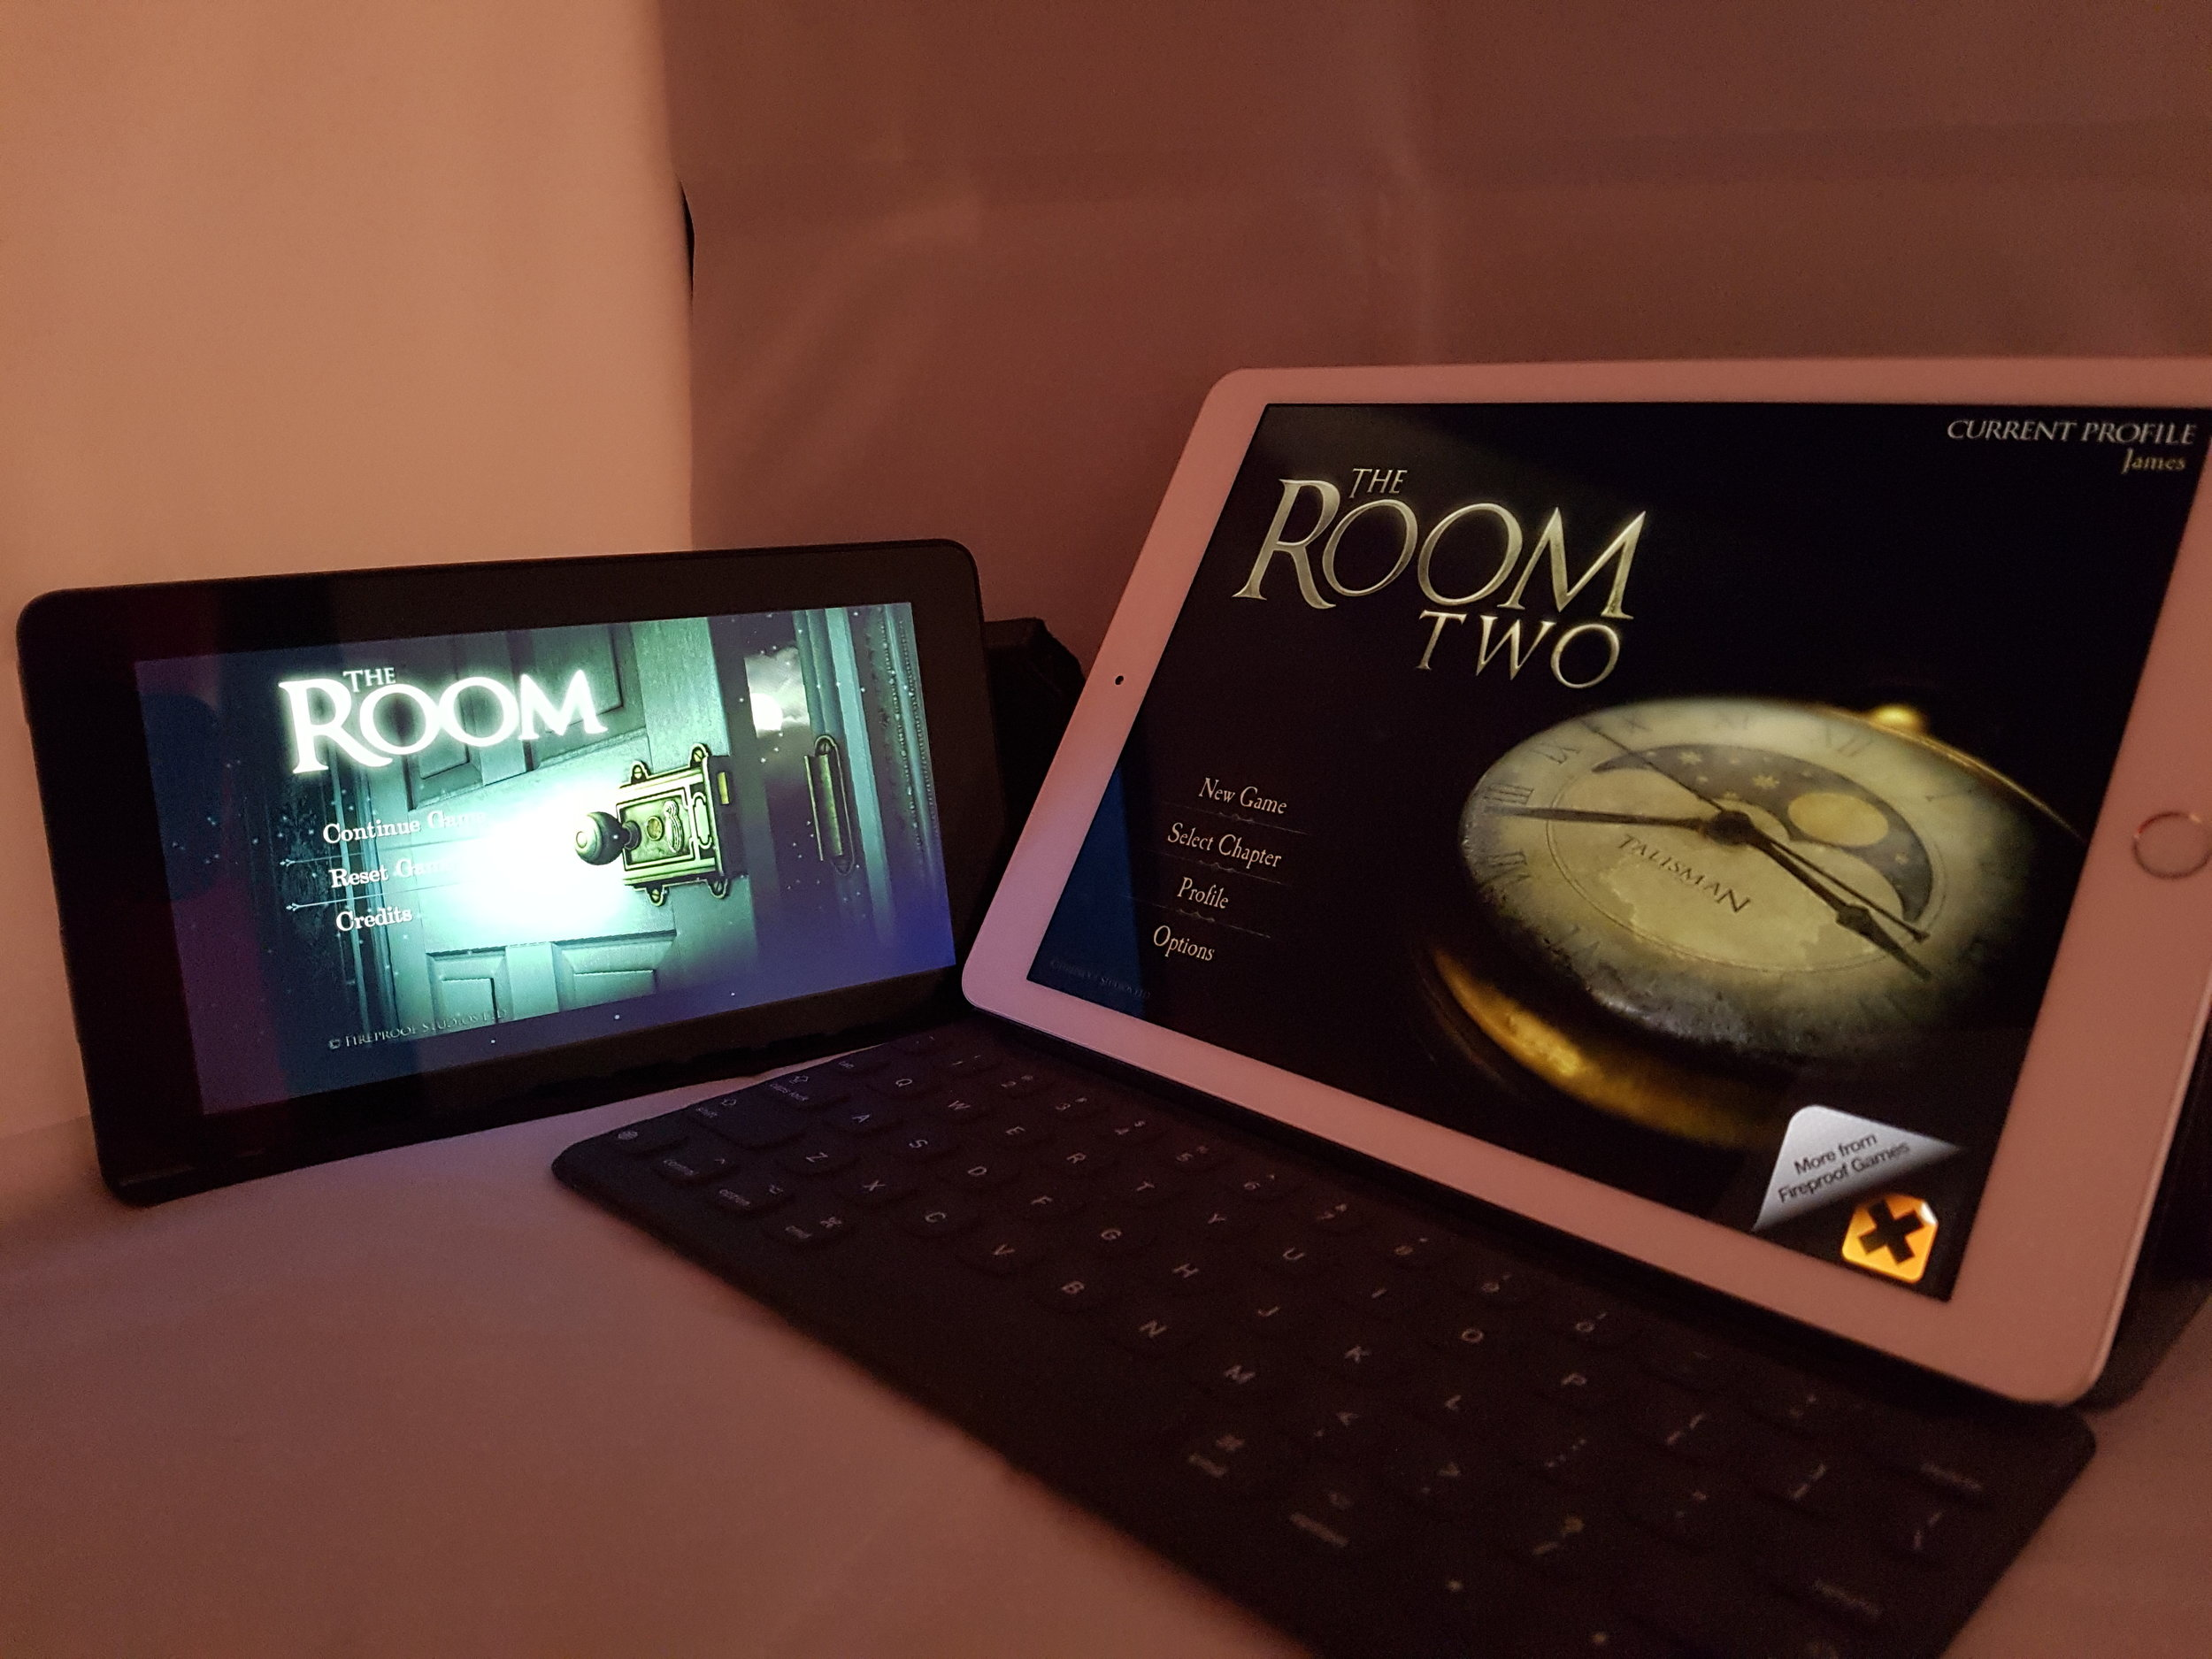 You can play 'The Room' on both, but it's far far far far more expensive to get hold of the one on the right. Worth it?